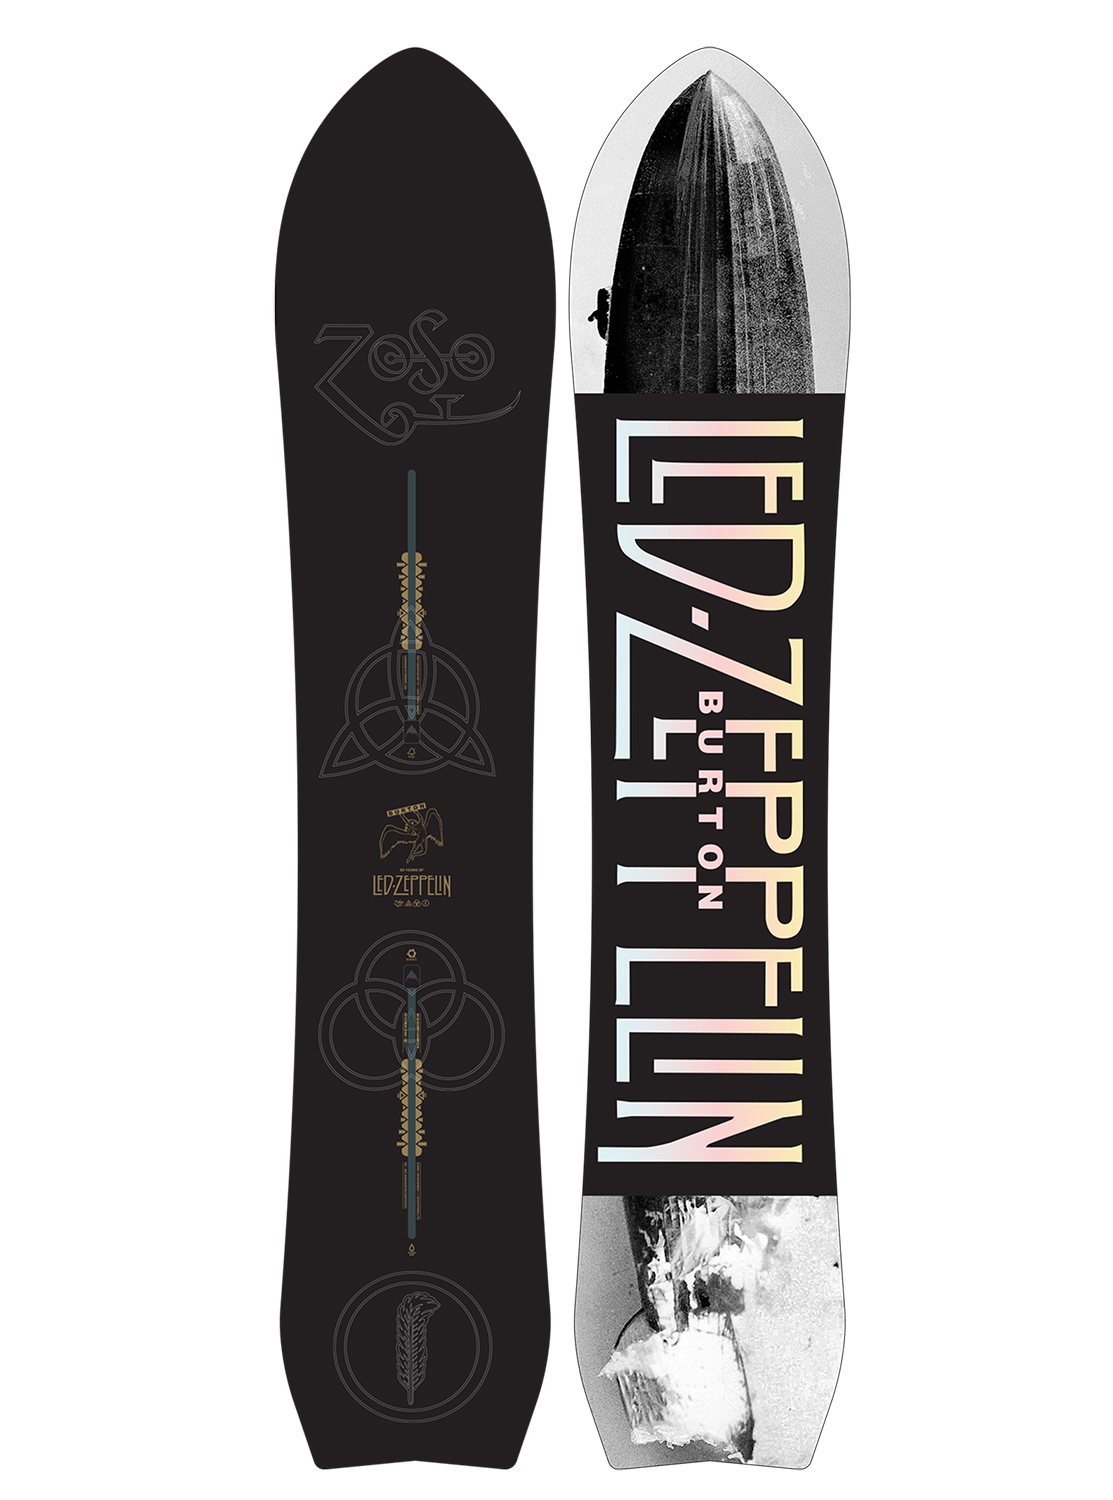 Led Zeppelin x Burton Misty Mountain Hop Snowboard